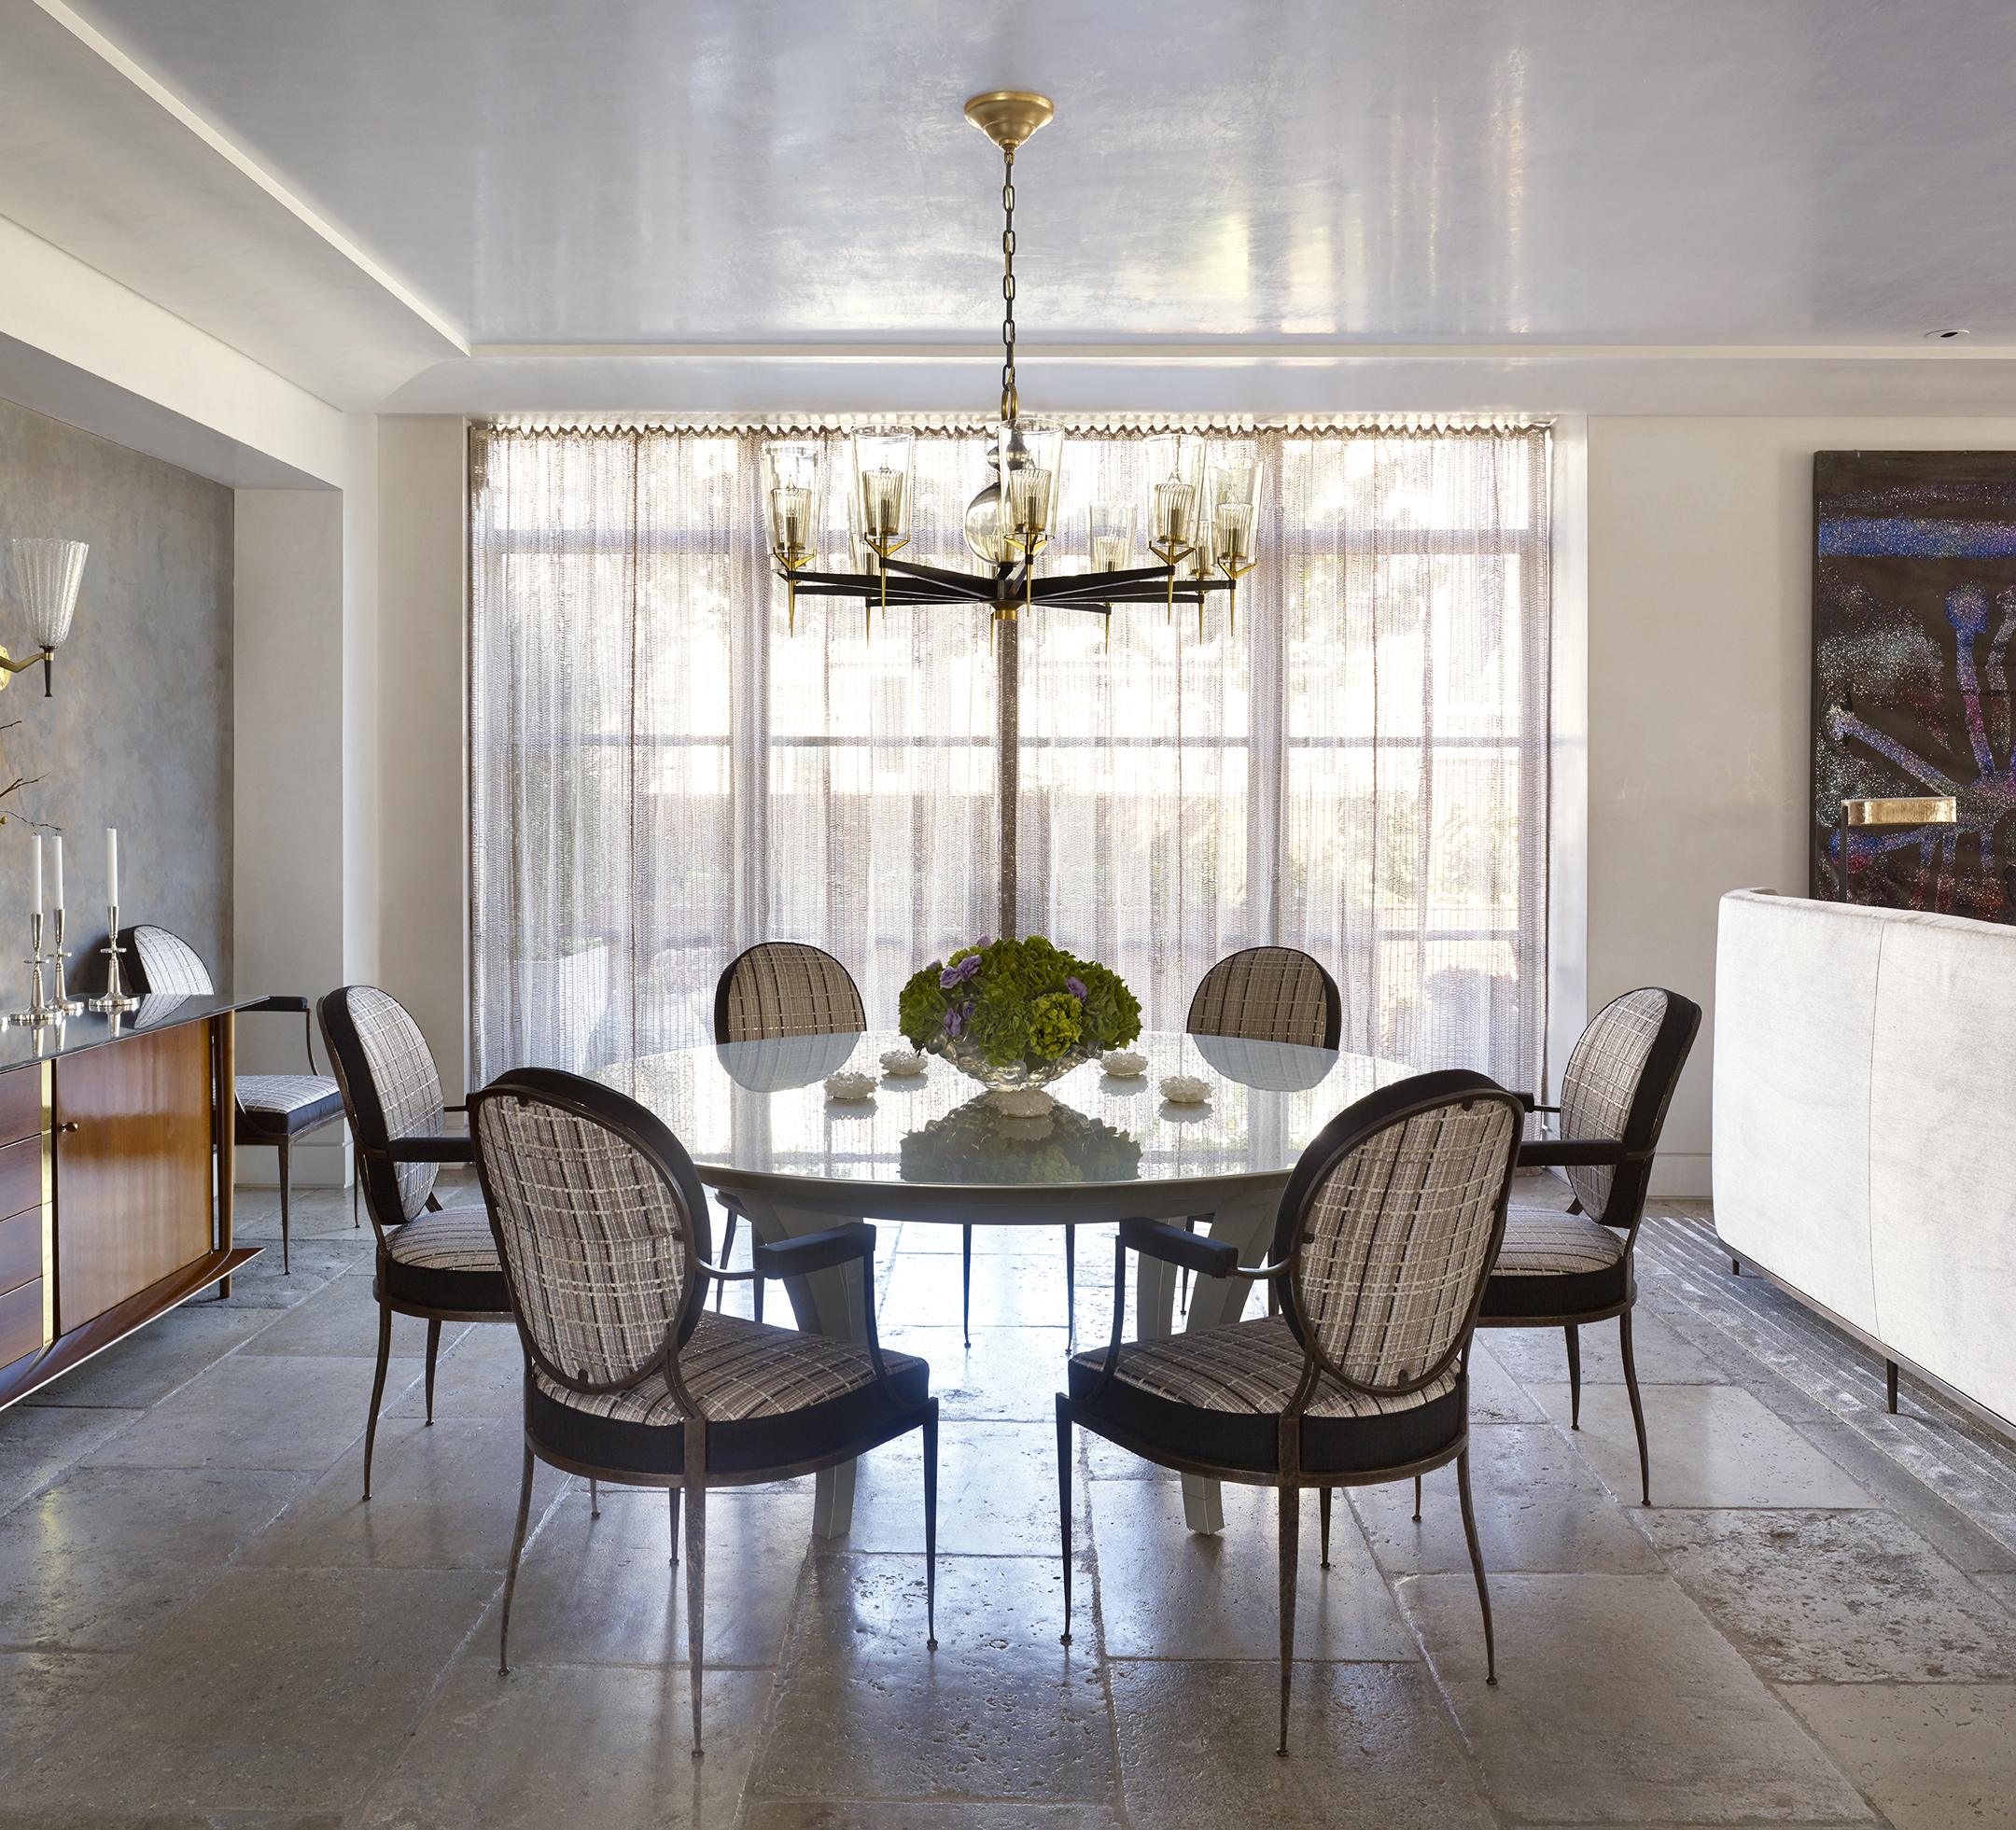 LUXE_121 W21_Dining Room 2_Curtains Closed_CROP_photo Peter Murdock.jpg